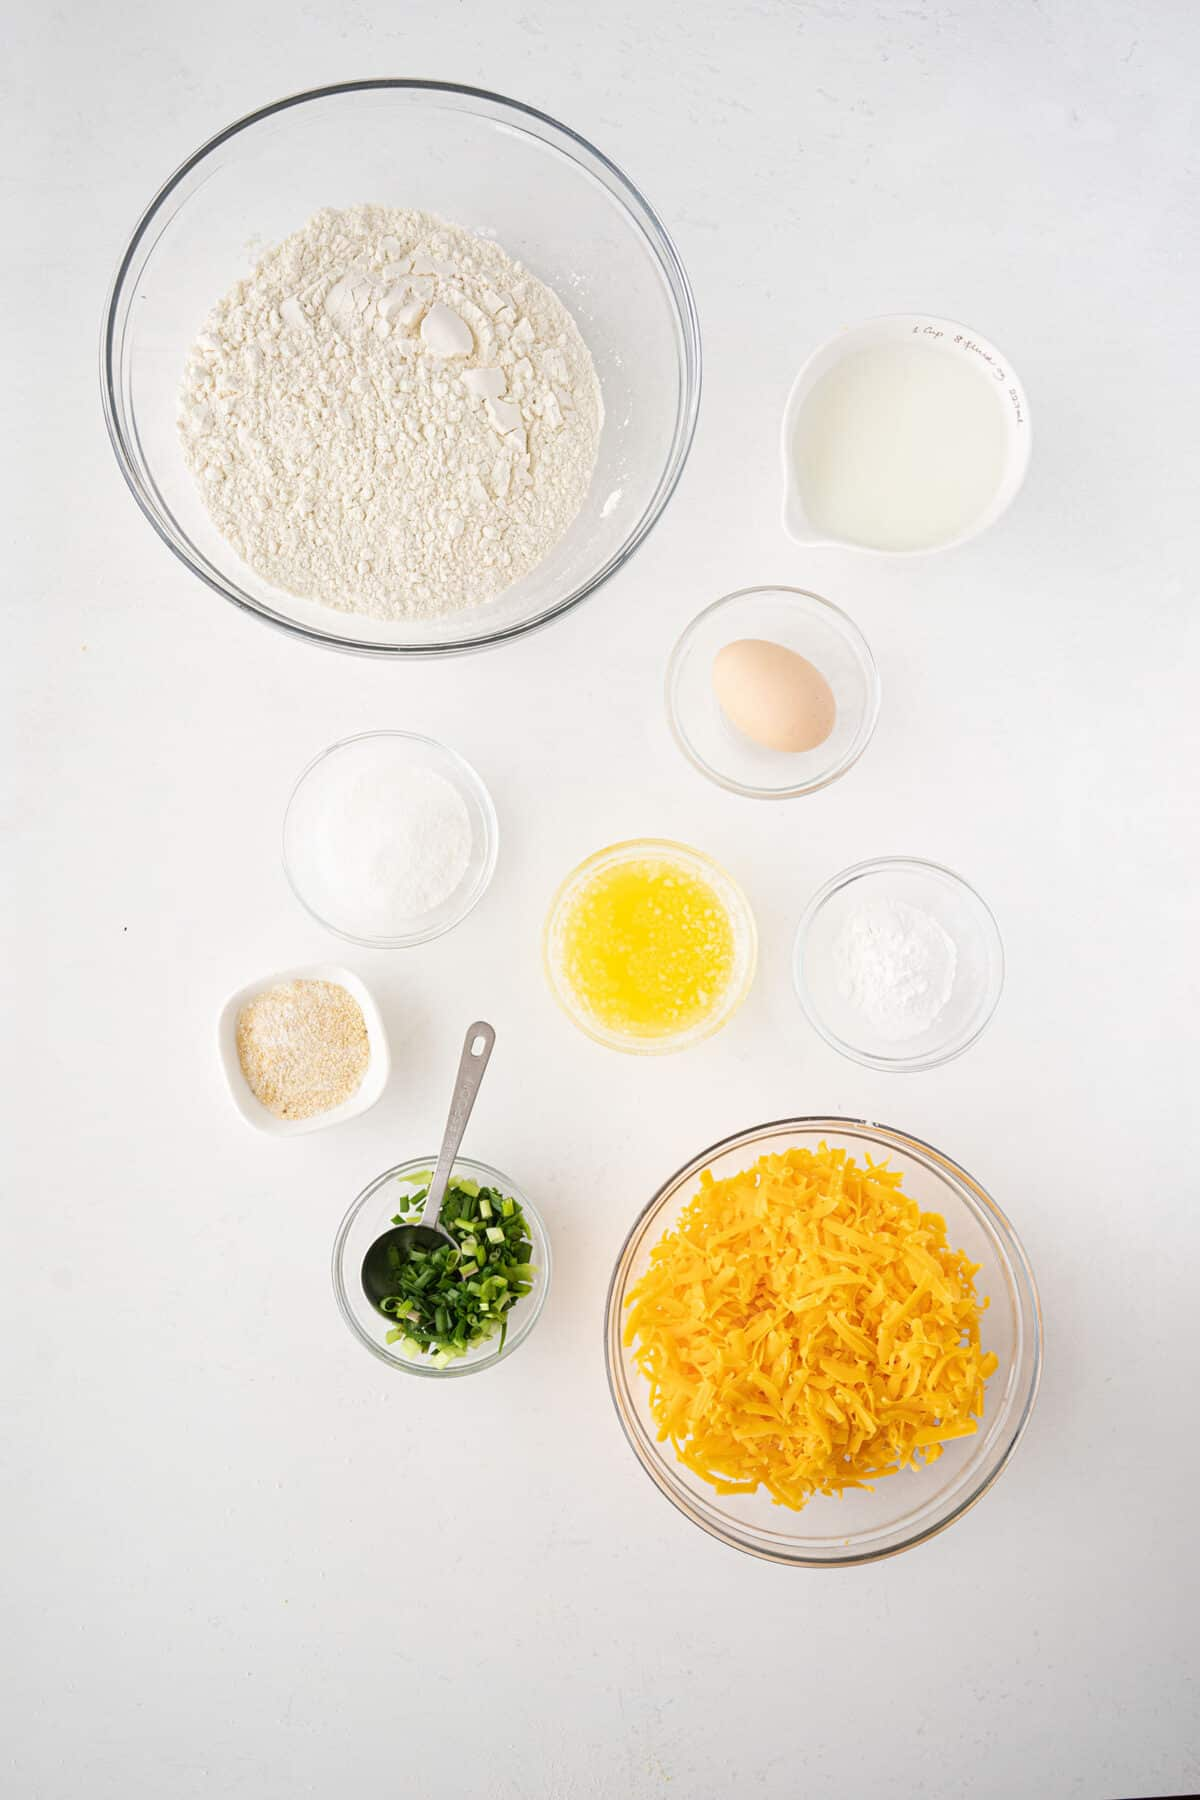 ingredients for cheese bread